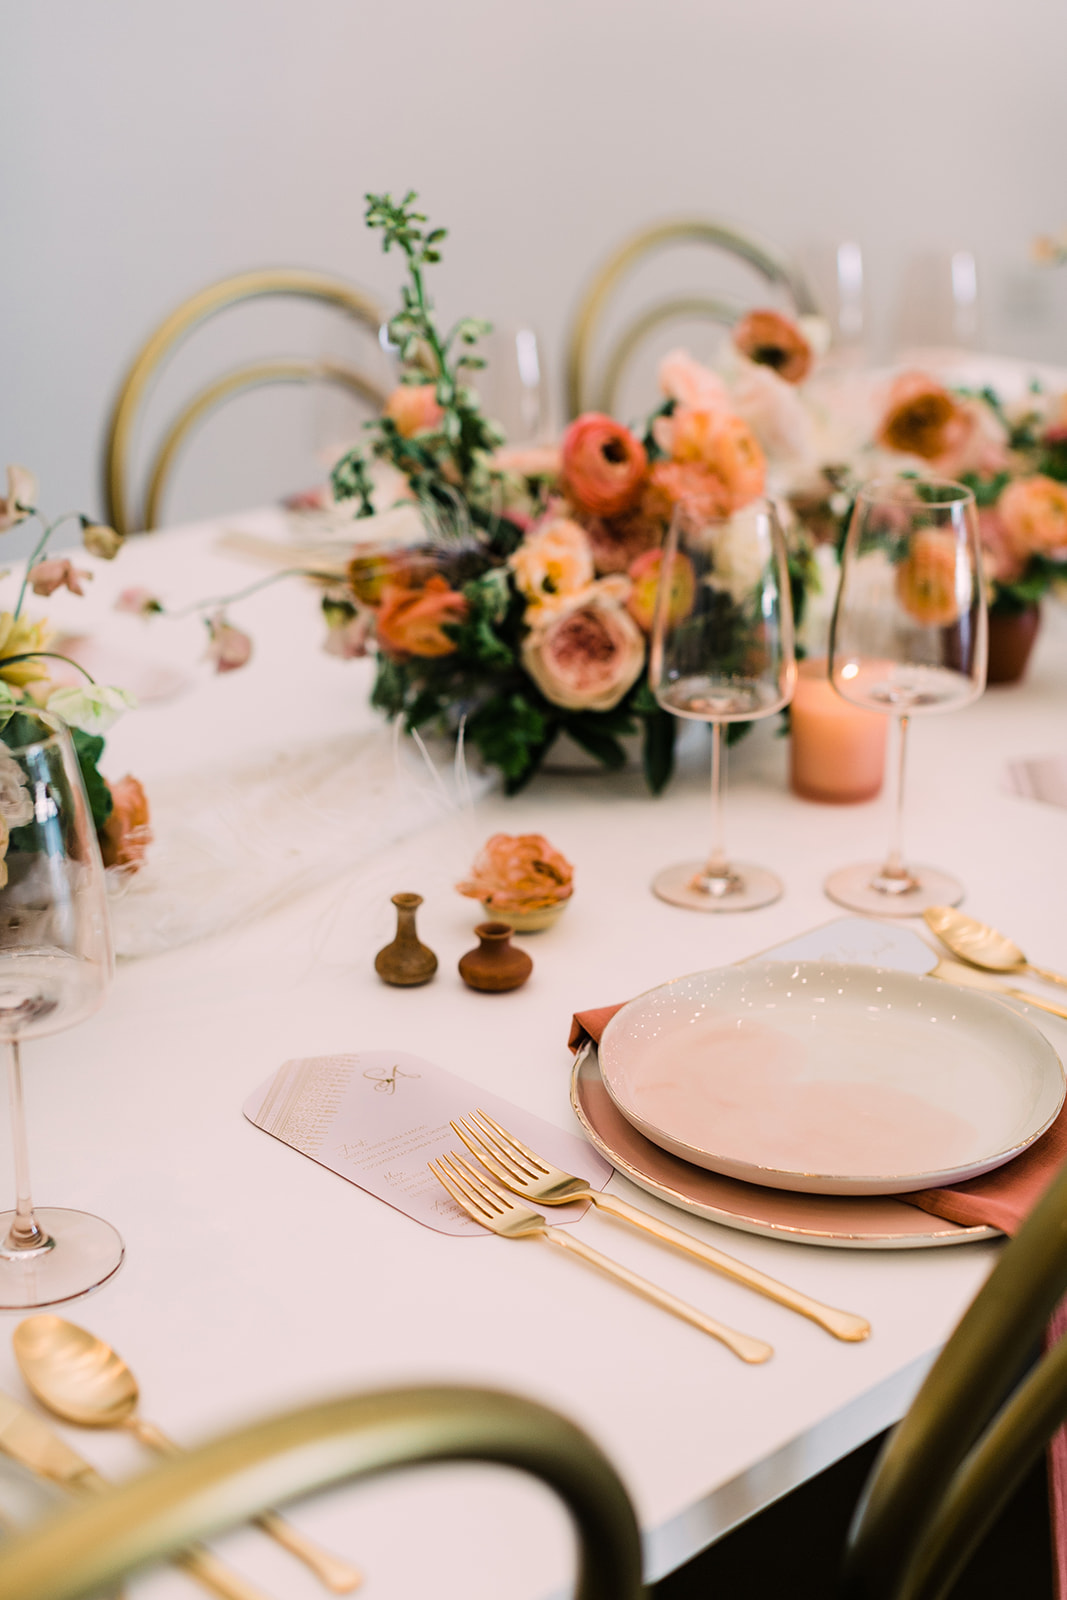 Greystone Table Top Fusion Styleshoot-Meadows Events